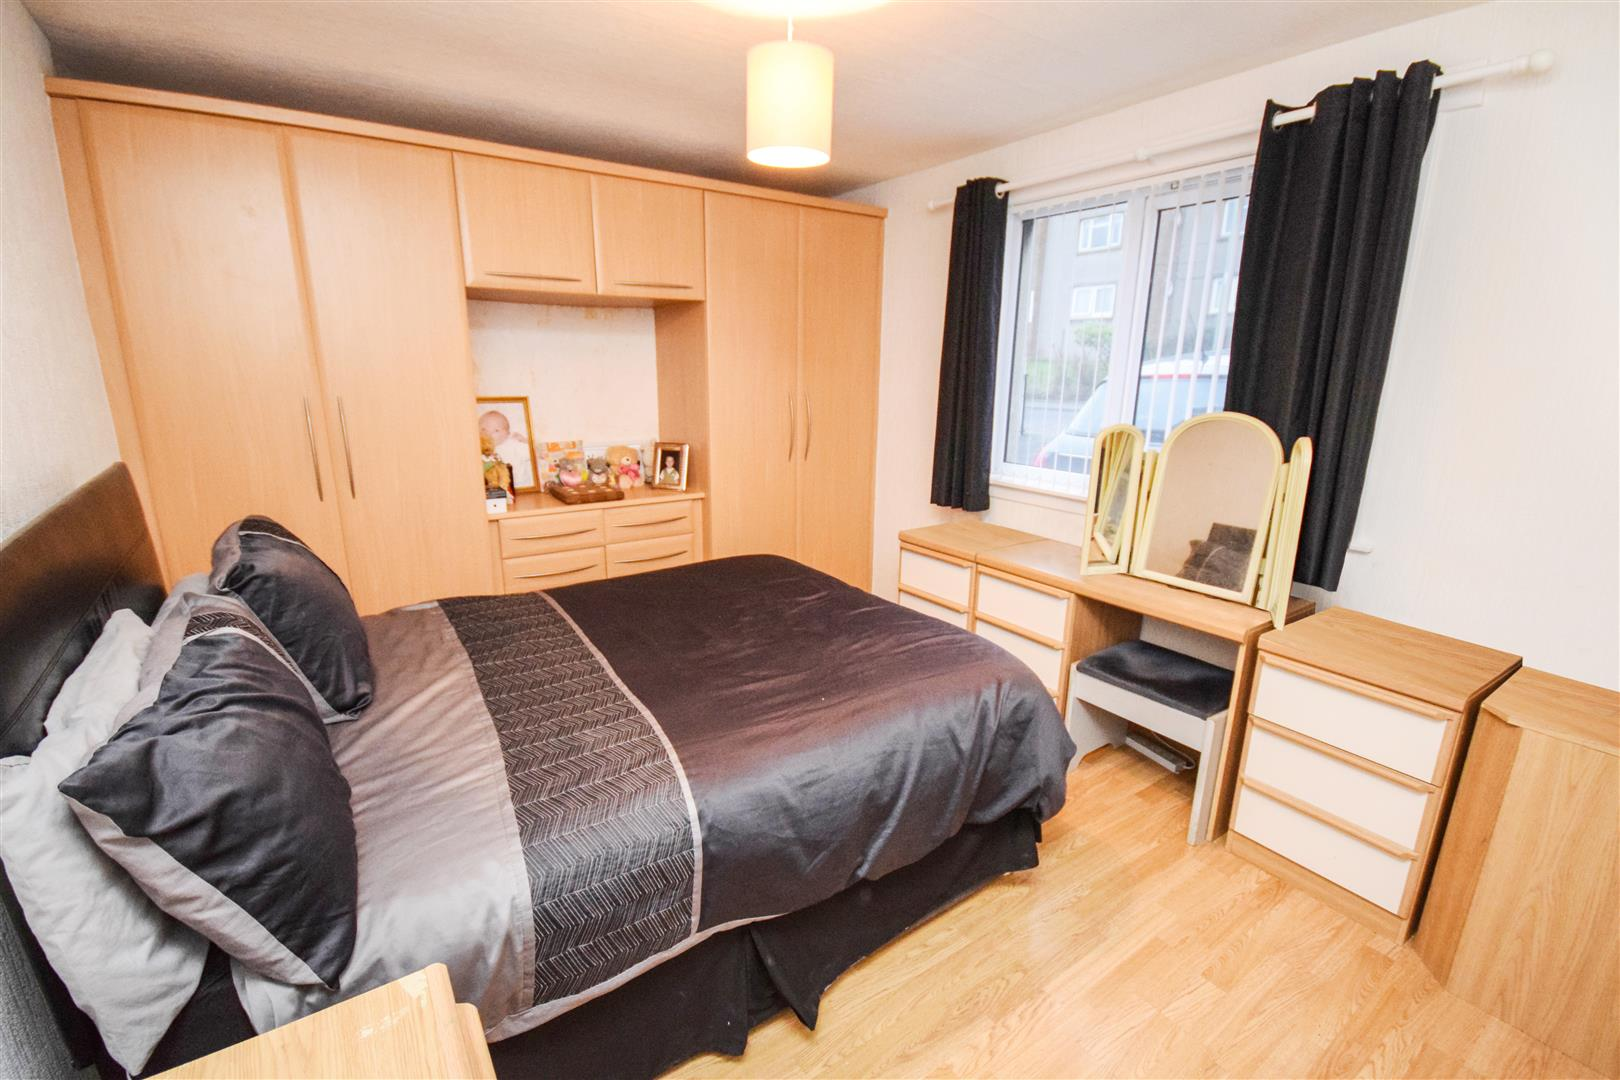 47, Dunsinane Drive, Perth, PH1 2DX, UK